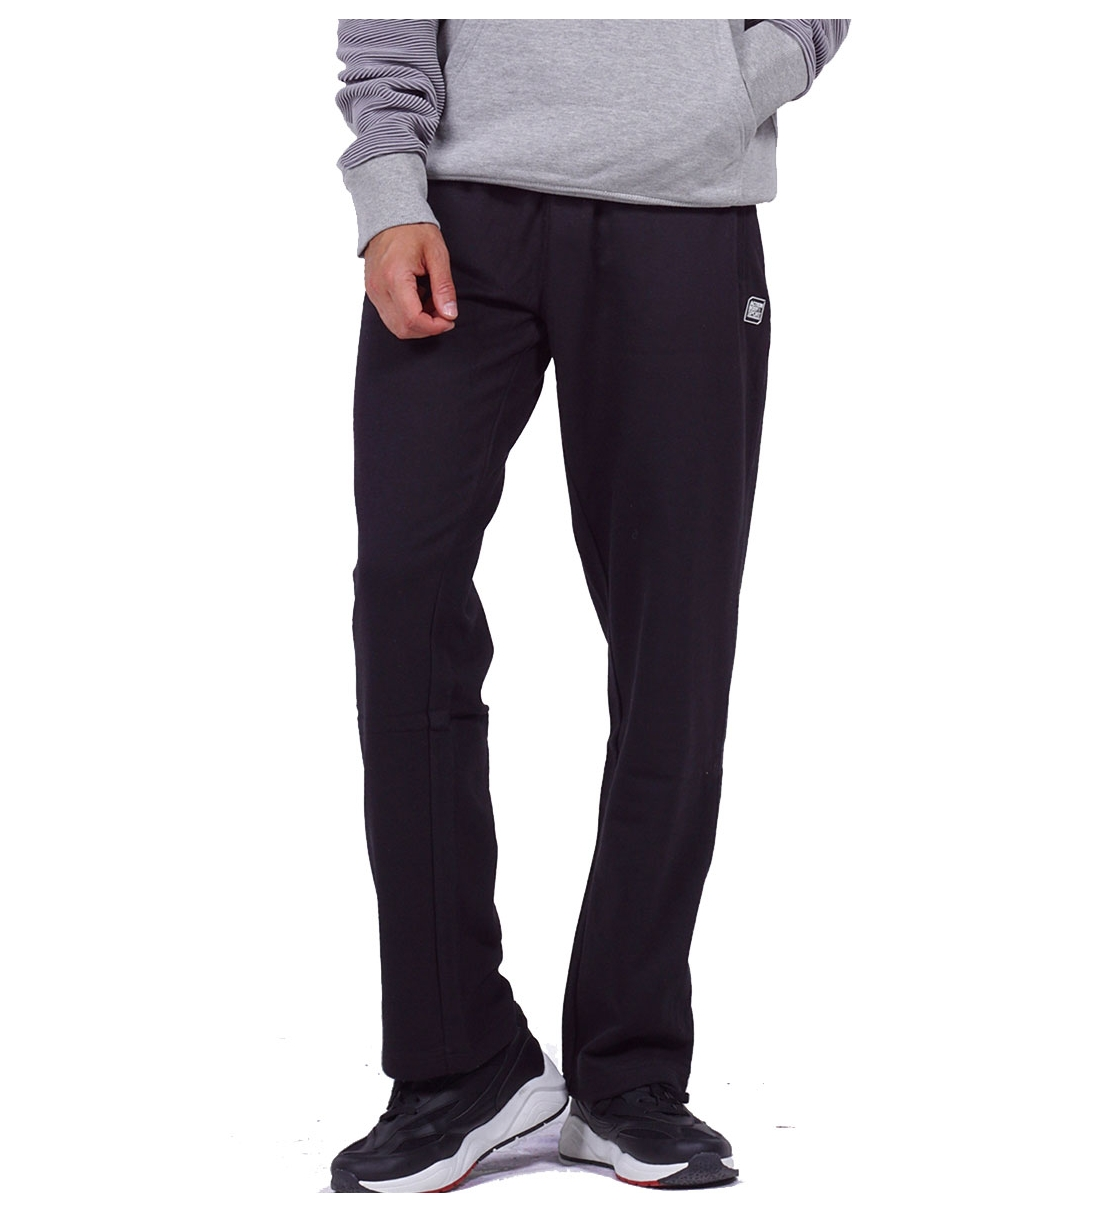 Body Action Fw19 Men Classic Sweatpants